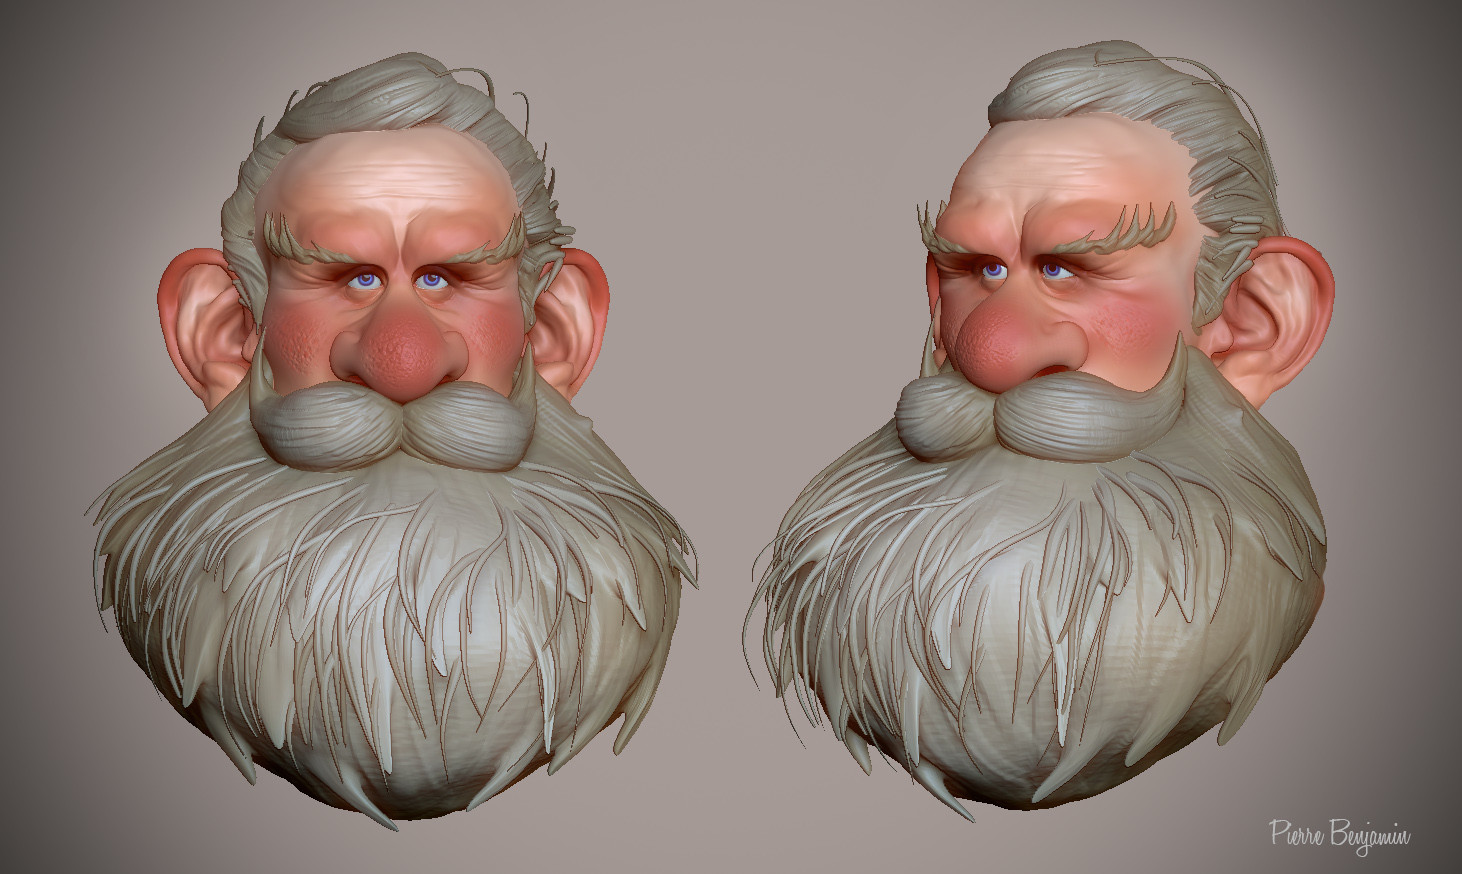 3D sculpt inspired by a 2D drawing by Alberto Camara